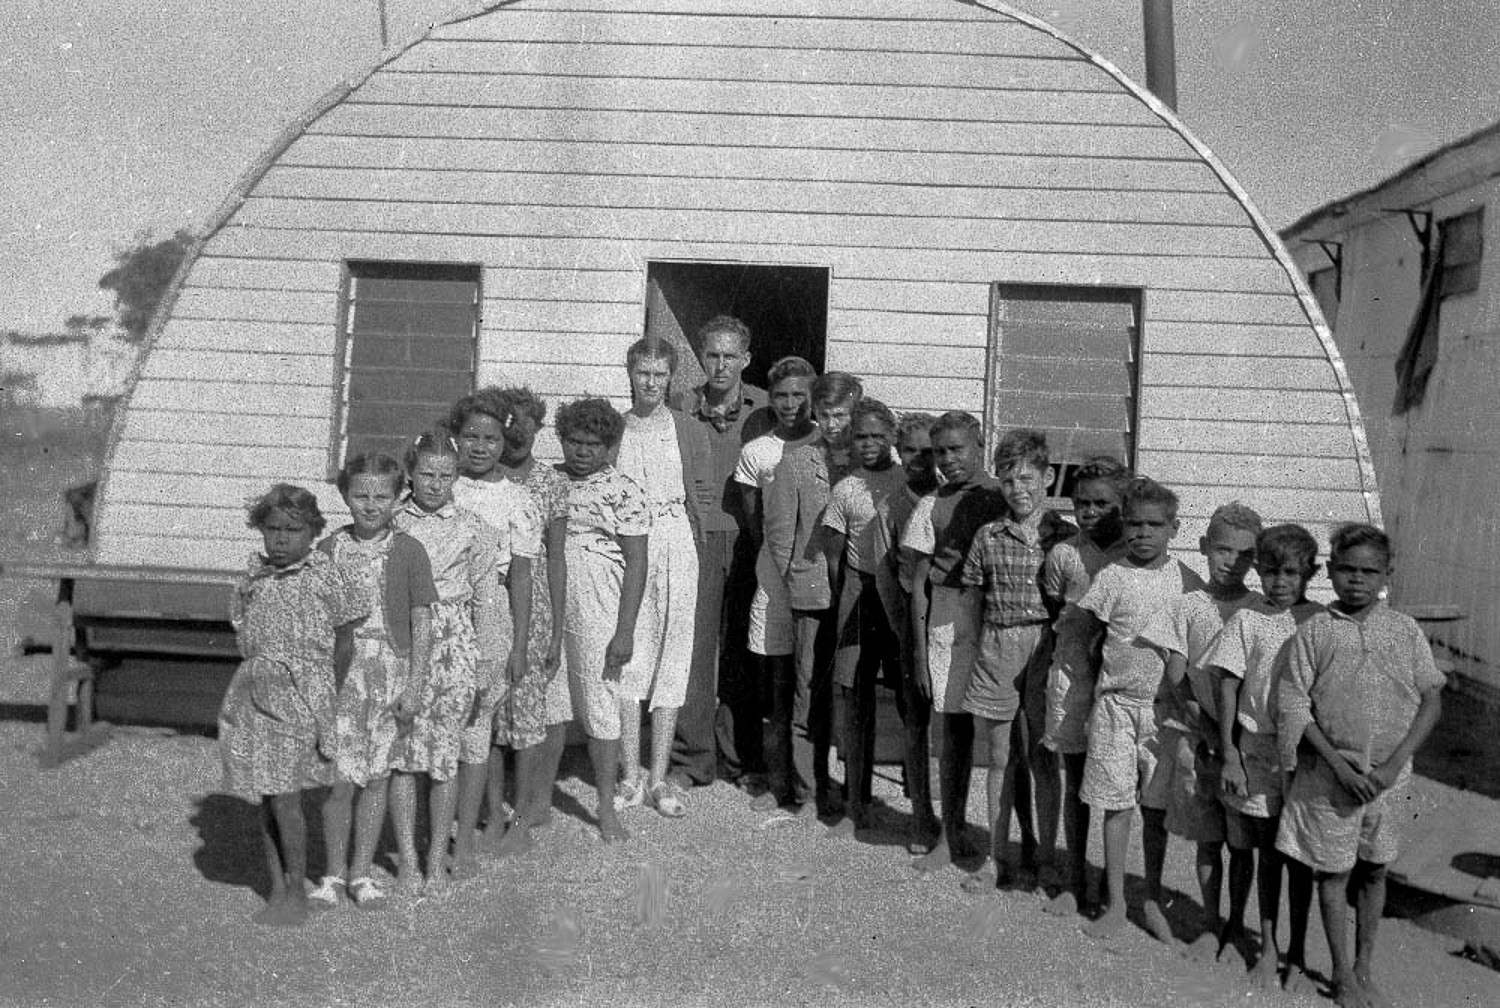 Part of the assimilation policy meant taking Anangu children from their parents to send them to school. Students would be taught in English and learn a western curriculum.